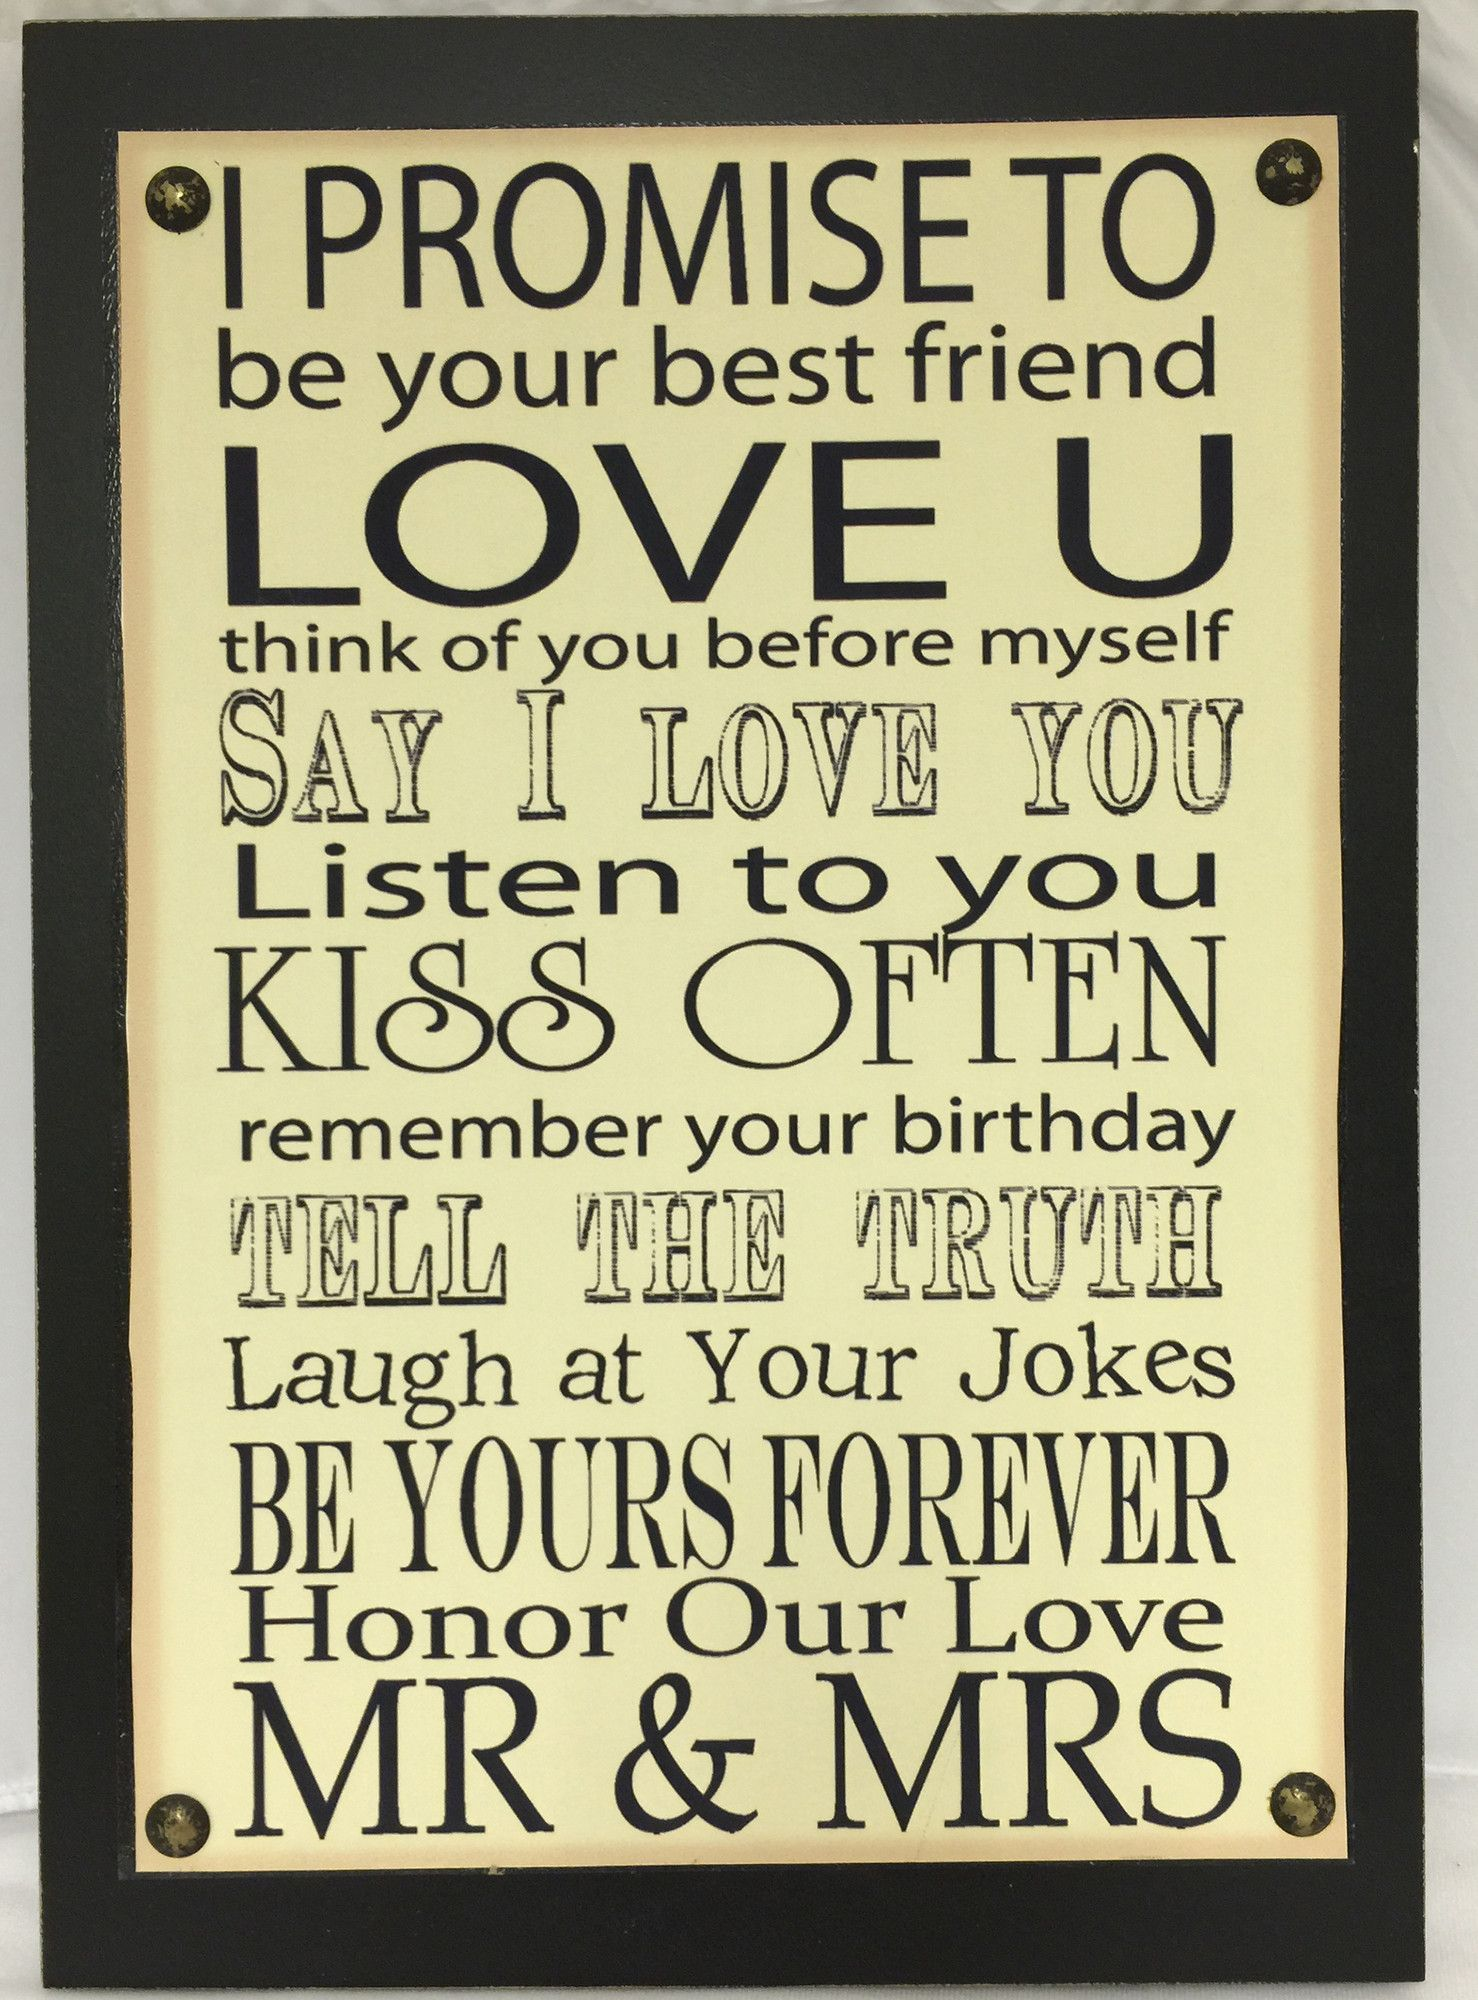 I Promise to Love U Sign Wall Decor | ARTS And | Pinterest | Wall ...